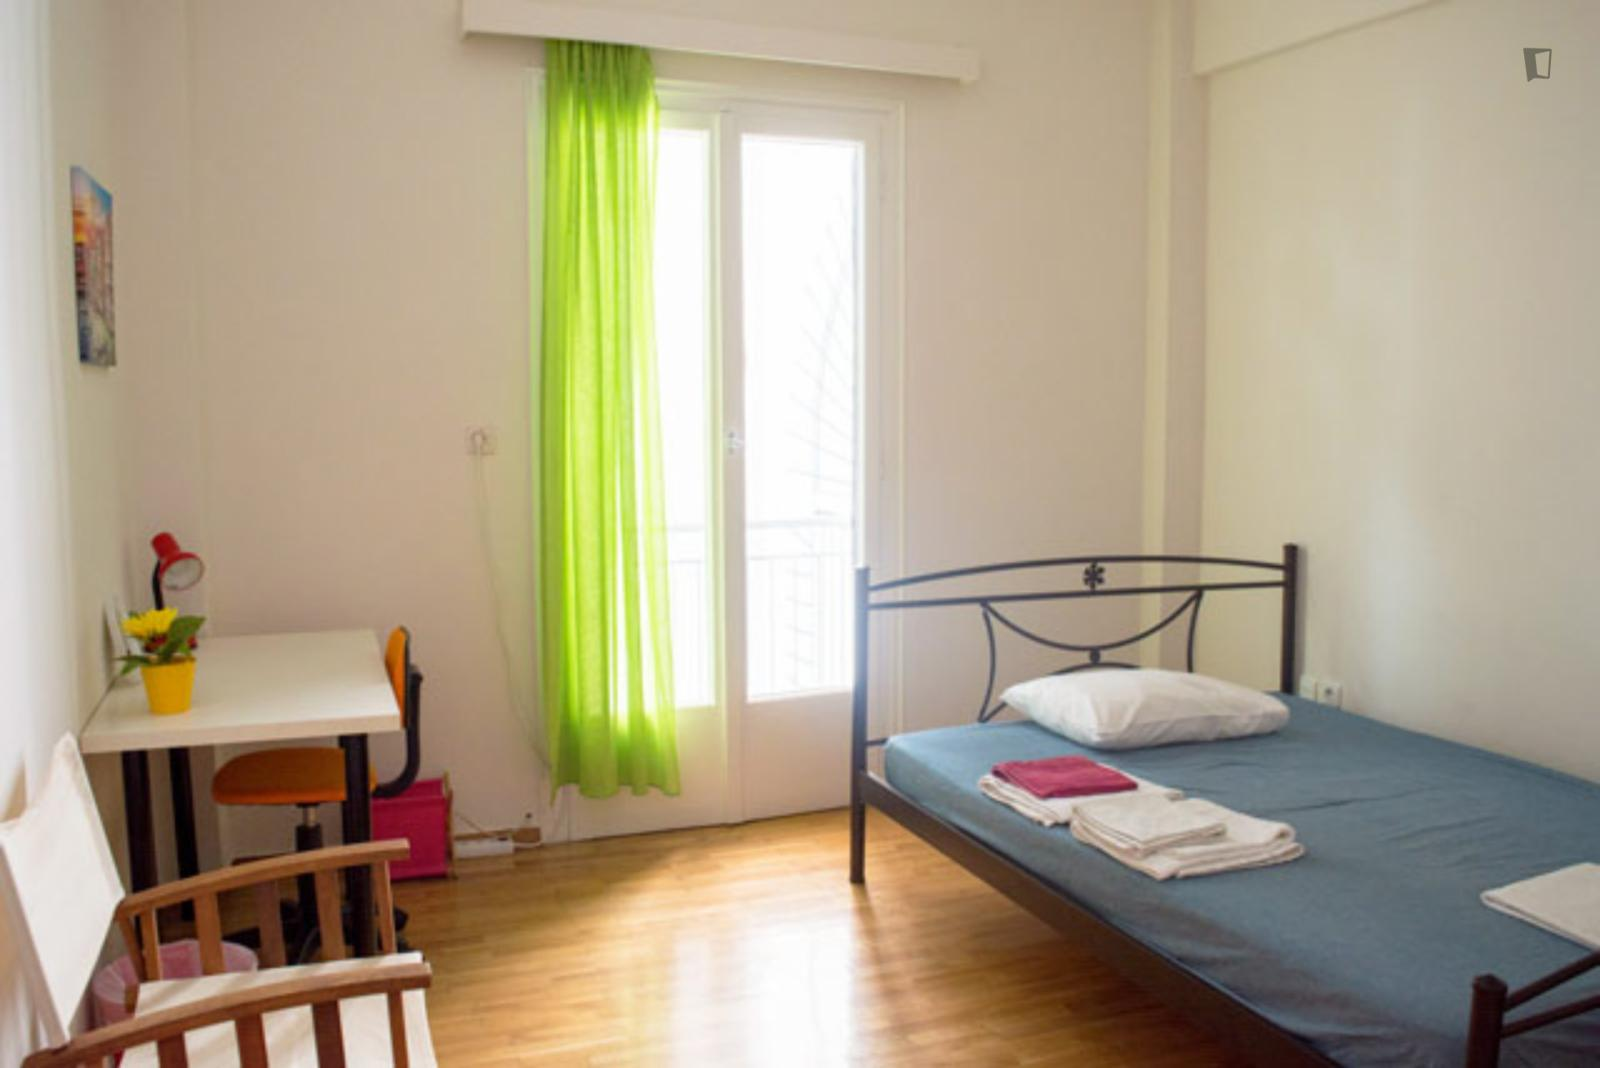 Spetson, Athens, WI - 270 USD/ month